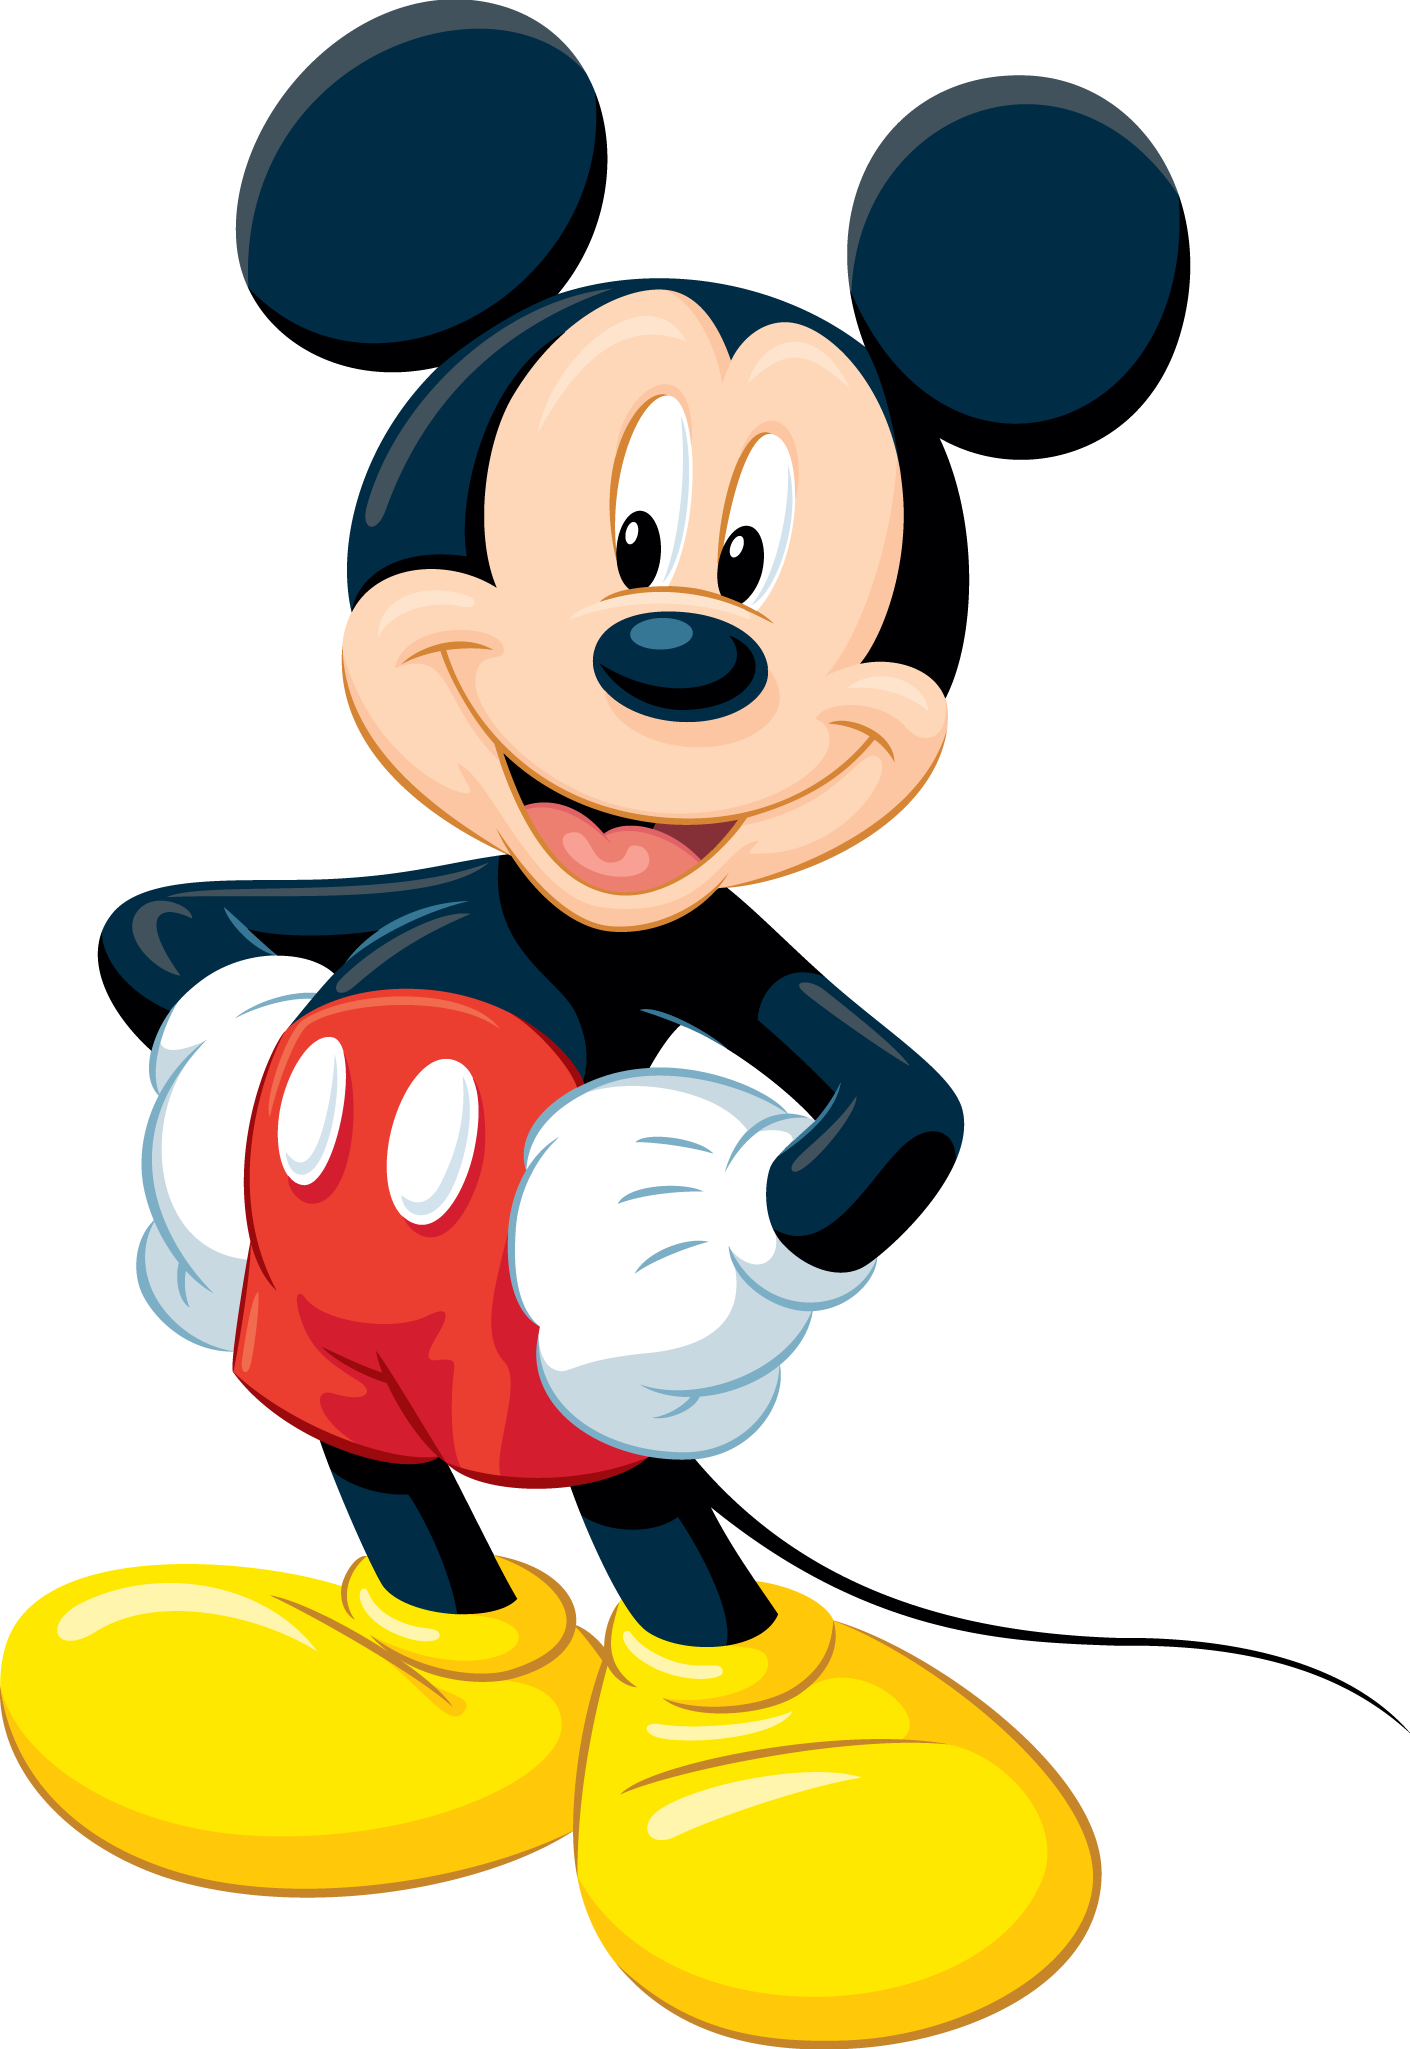 Kid club house clipart graphic transparent Mickey Mouse | Sammies 2nd Birthday | Pinterest | Mickey mouse, Mice ... graphic transparent